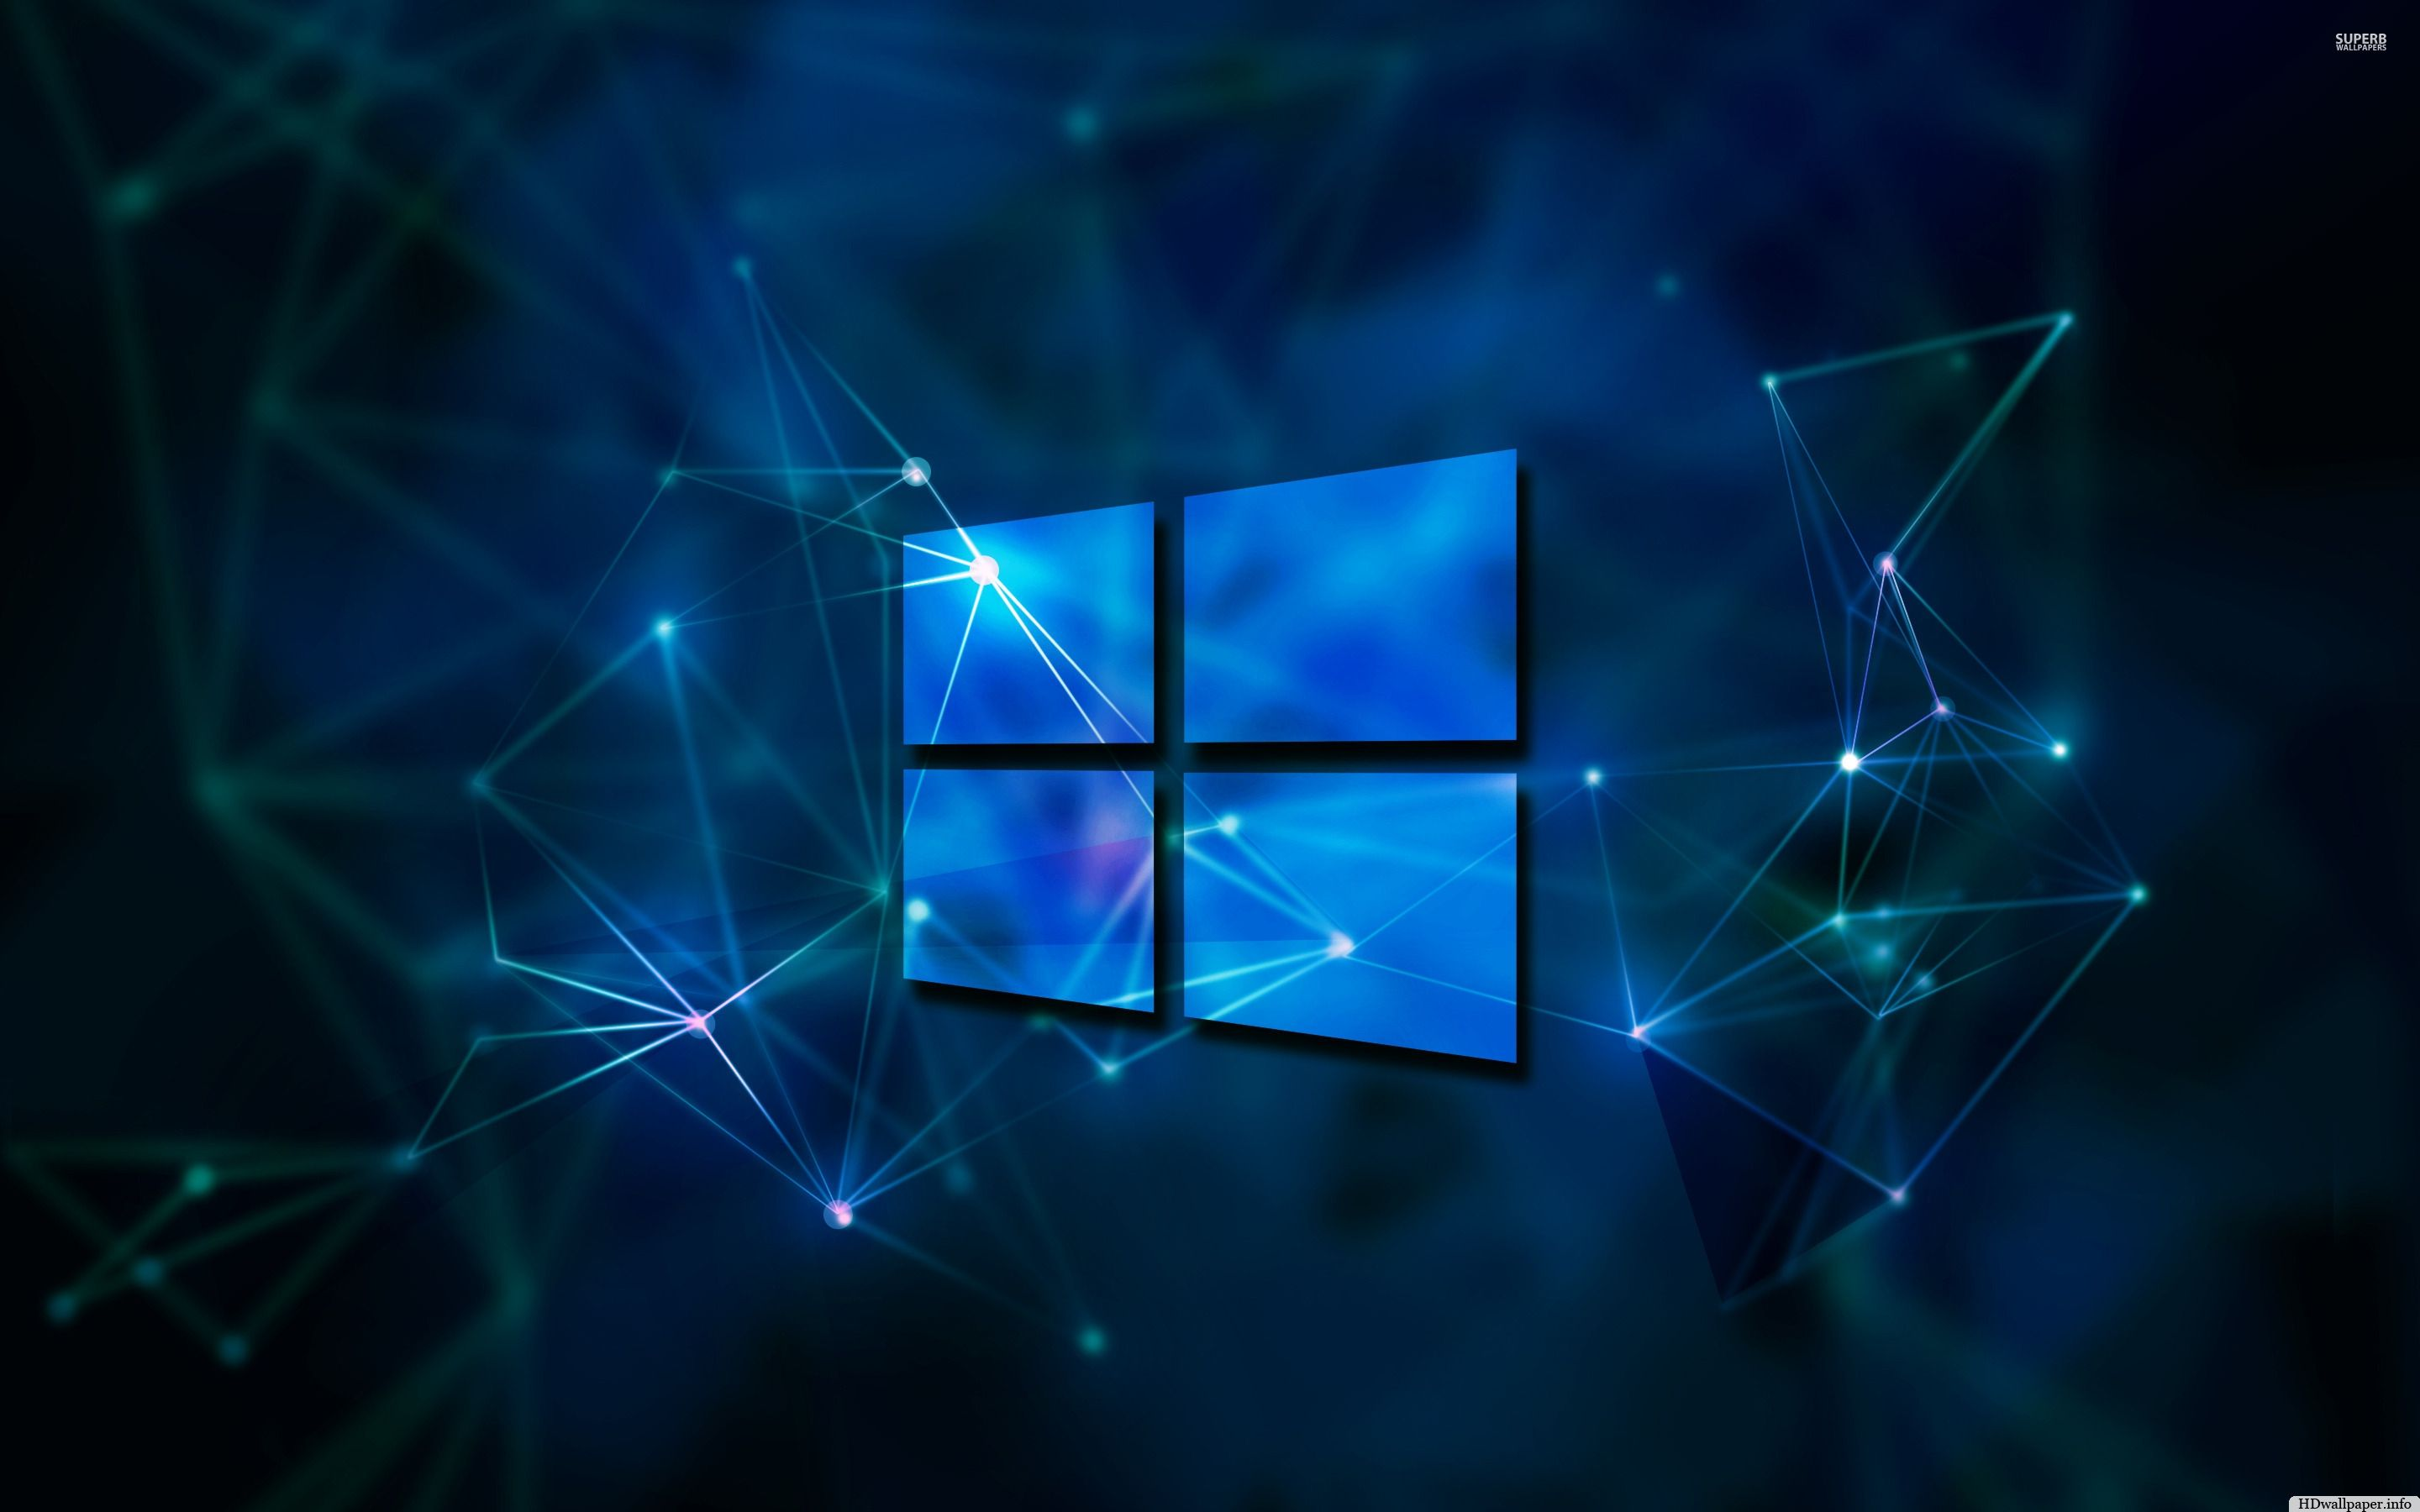 Windows 10 Wallpaper Background Http Hdwallpaper Info Windows 10 Wallpaper Background Hd Wallpape Wallpaper Windows 10 Laptop Wallpaper Windows Wallpaper